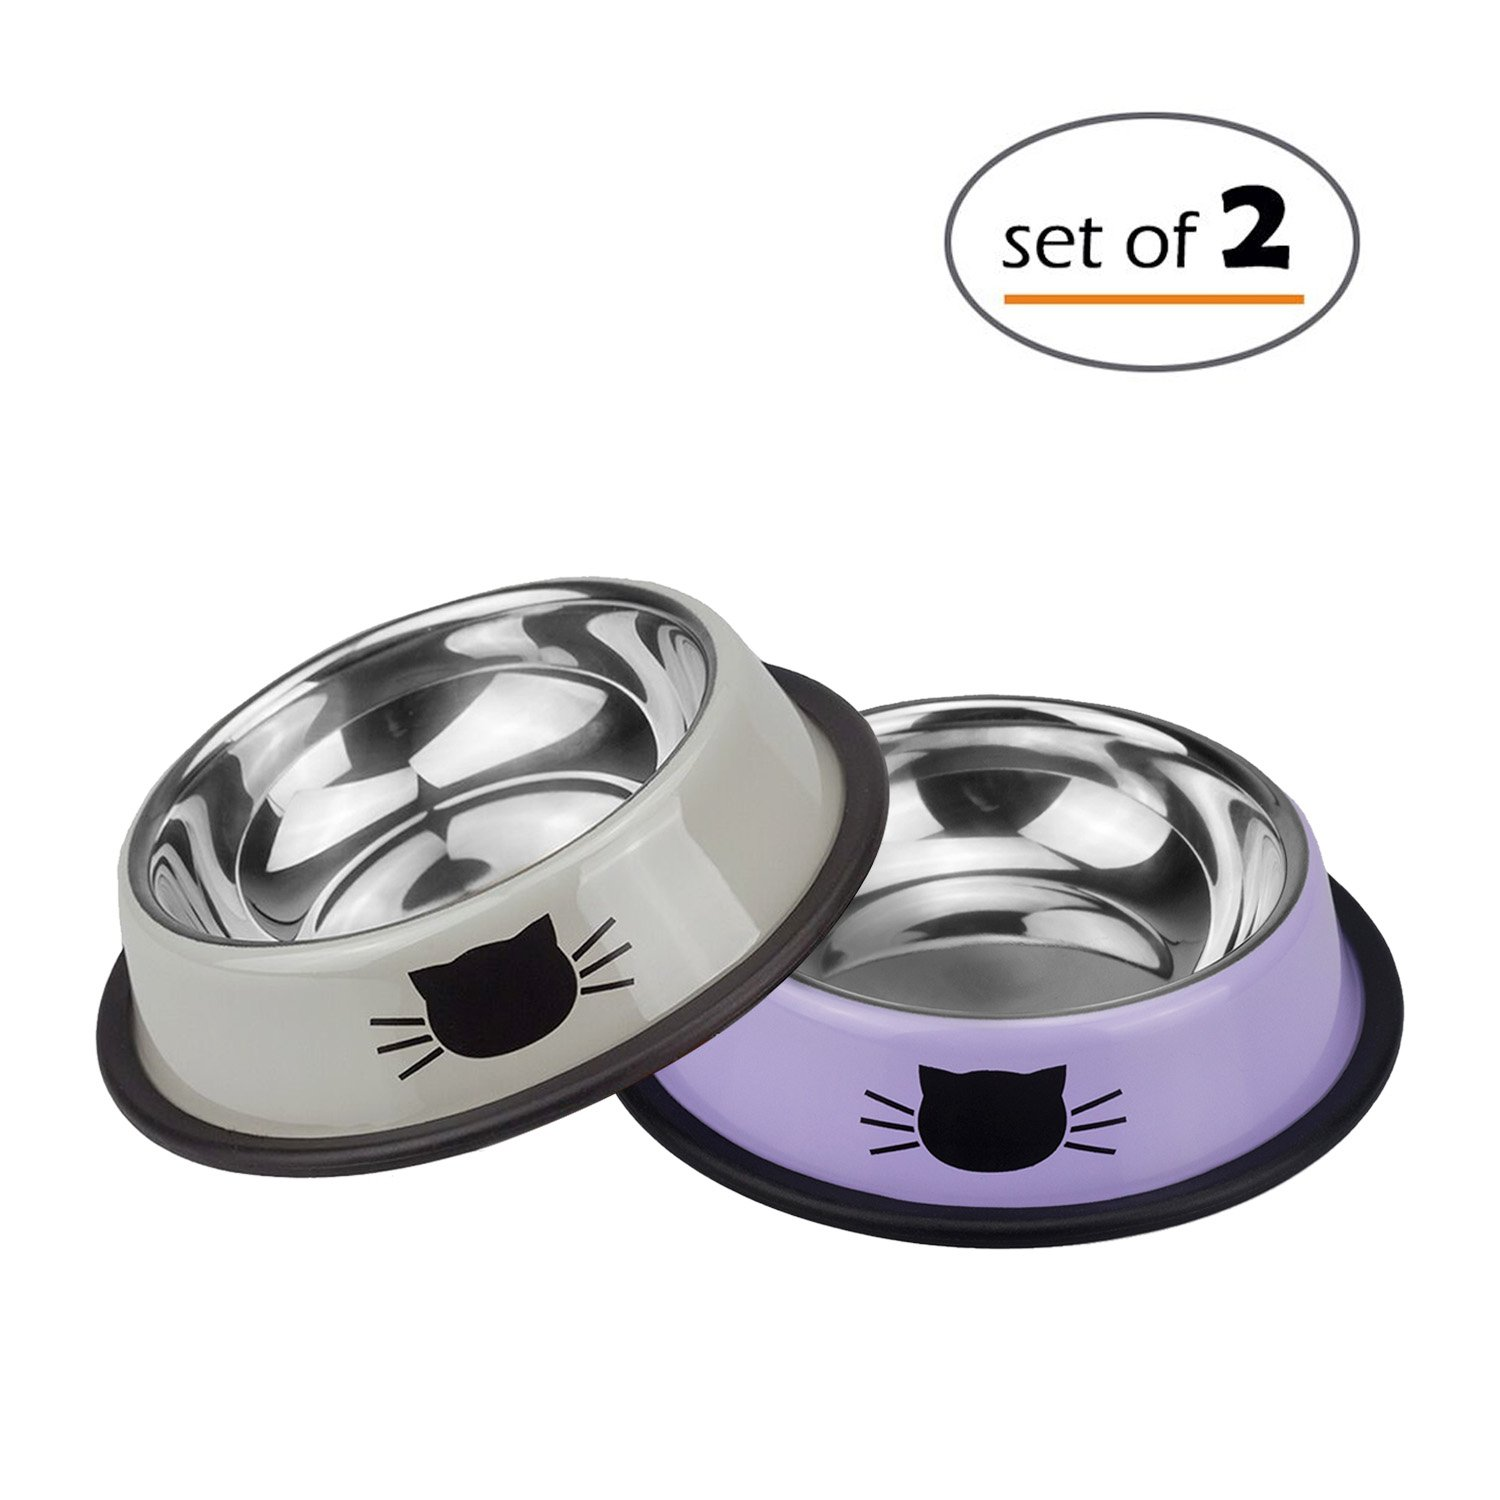 Petfamily Stainless Steel Bowl Colorful Cute Dog Bowl or Cat Dish with Non-Sl...